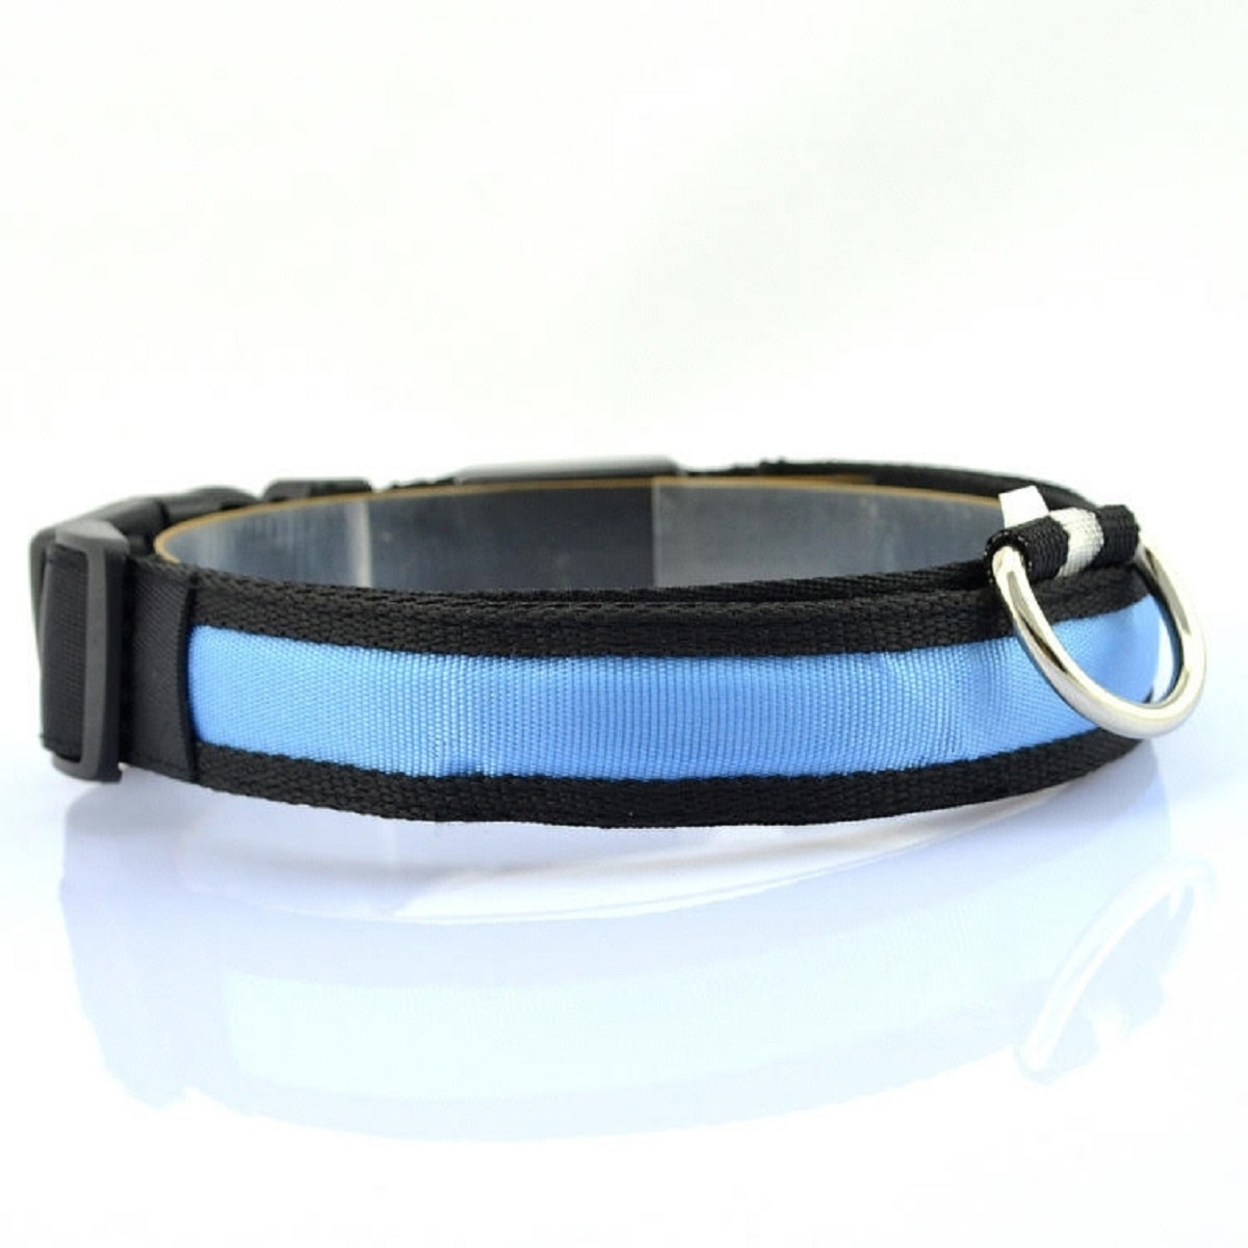 LED Rechargable Pet Collar - Blue, Small 5a748922bd549146ca32b69f